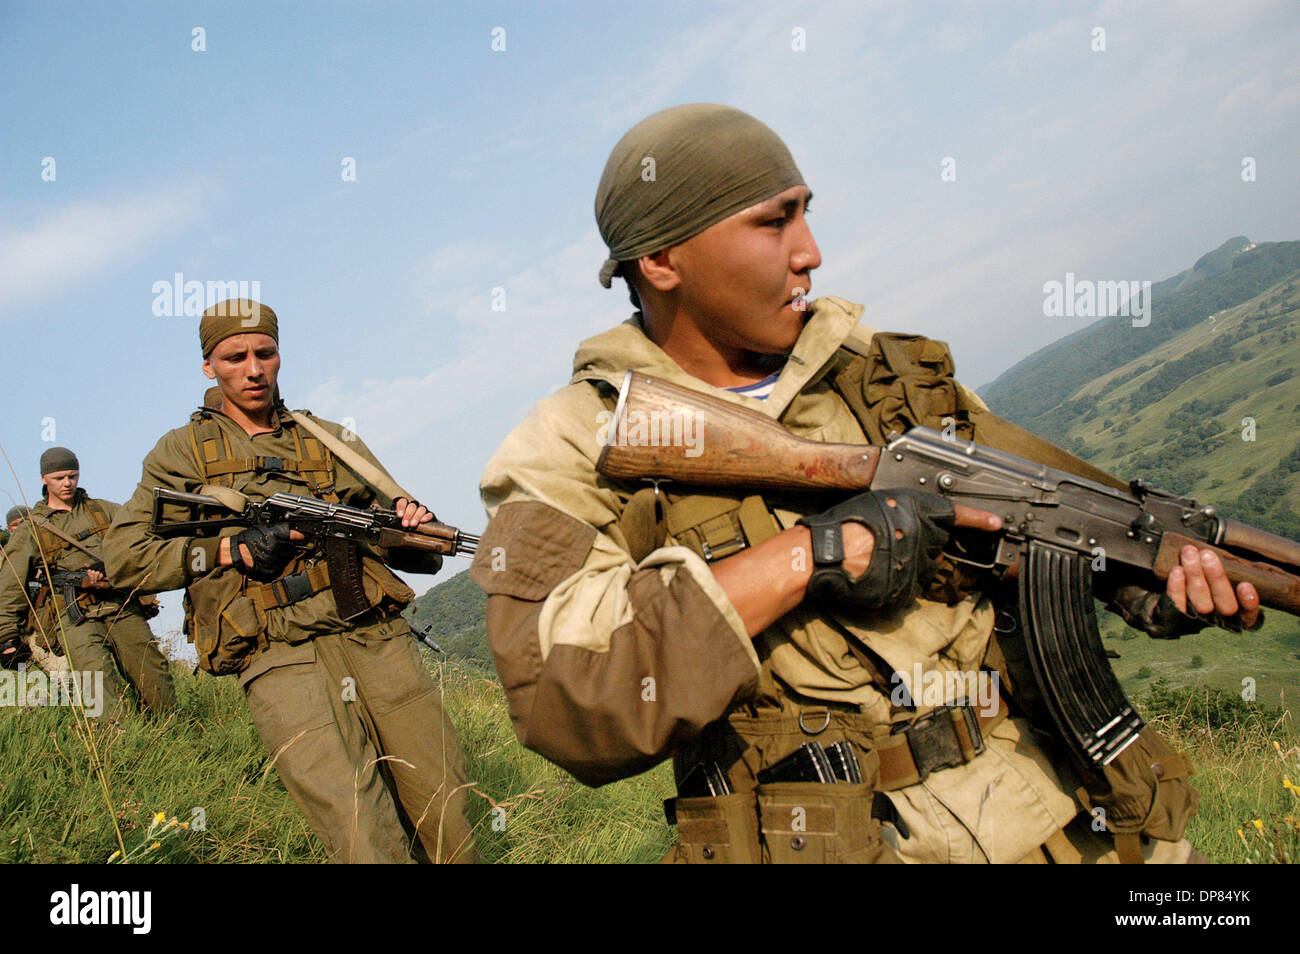 Russian army combat mountain conditions training in Krasnodar region of Russia which is very close to the Northen Caucasus (Chechnya, Georgia,Osetia,Abkhazia).(Credit Image: © PhotoXpress/ZUMA Press) RESTRICTIONS: North and South America Rights ONLY! - Stock Image